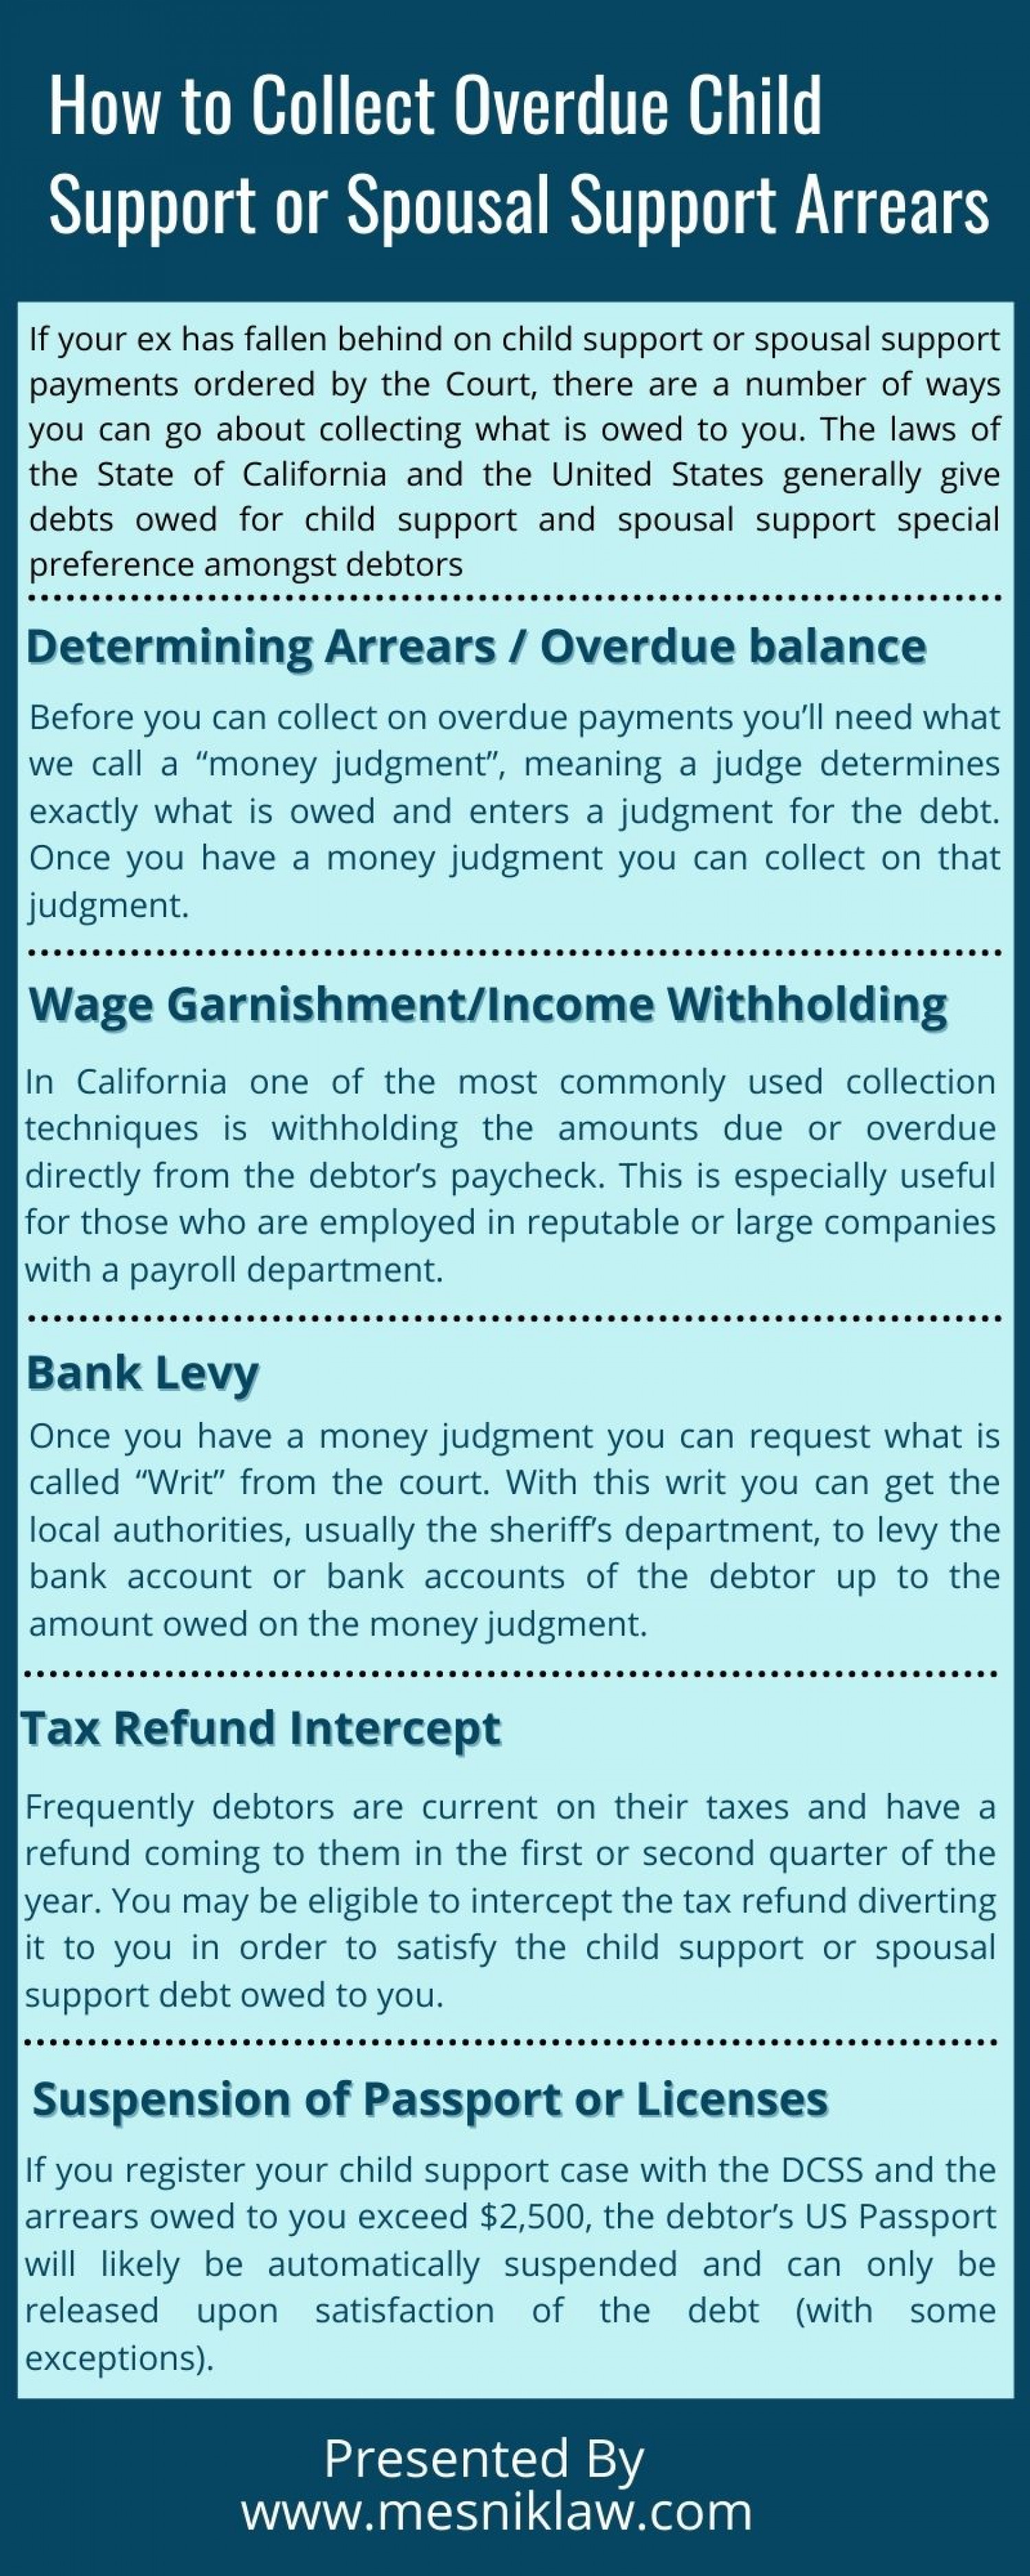 How to Collect Overdue Child Support or Spousal Support Arrears Infographic